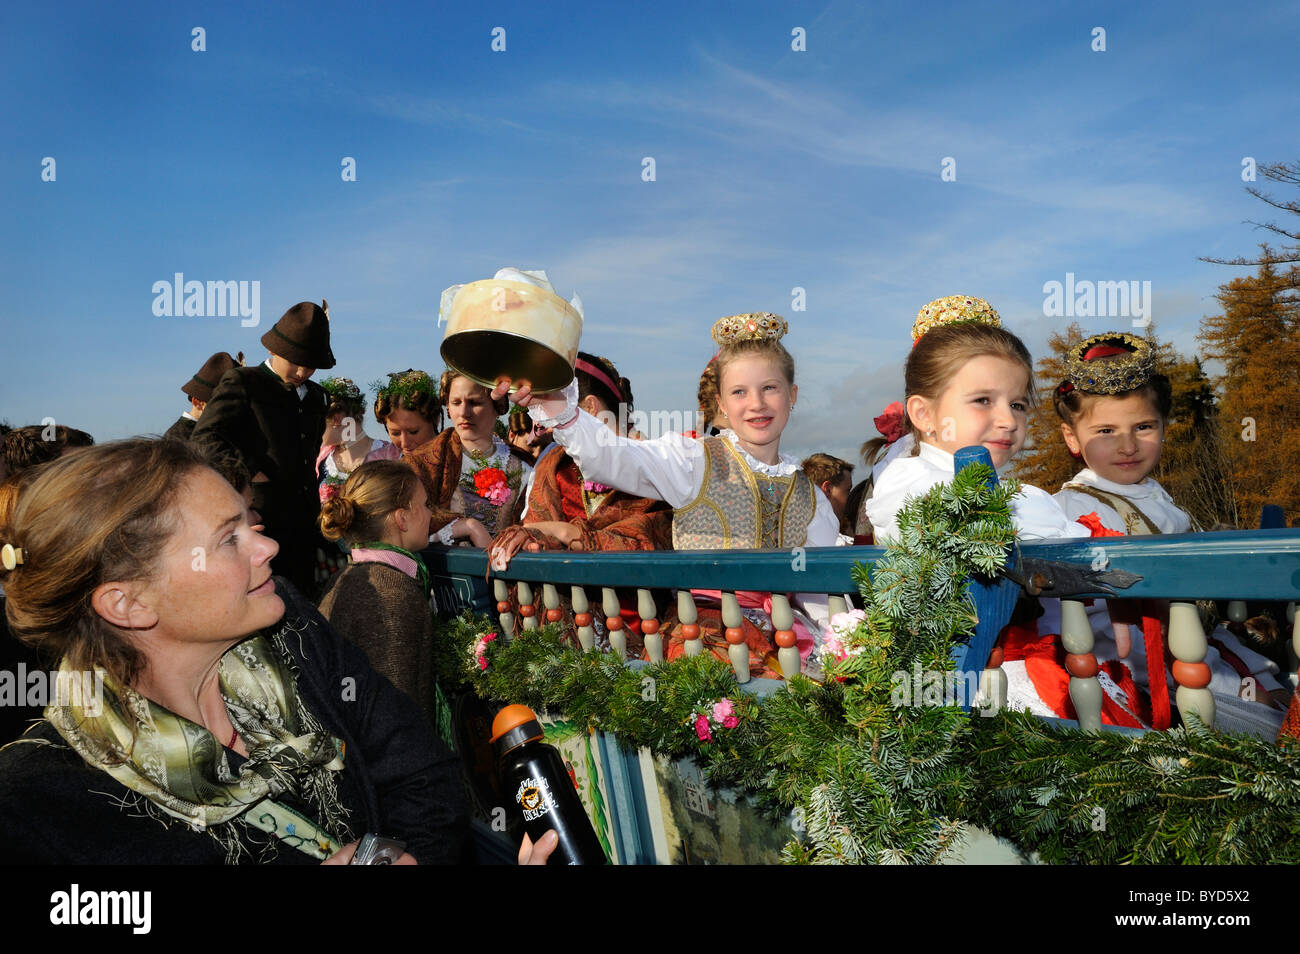 Leonhardifahrt, a procession with horses for the feast day of Saint Leonard of Noblac, Bad Toelz, Upper Bavaria, - Stock Image